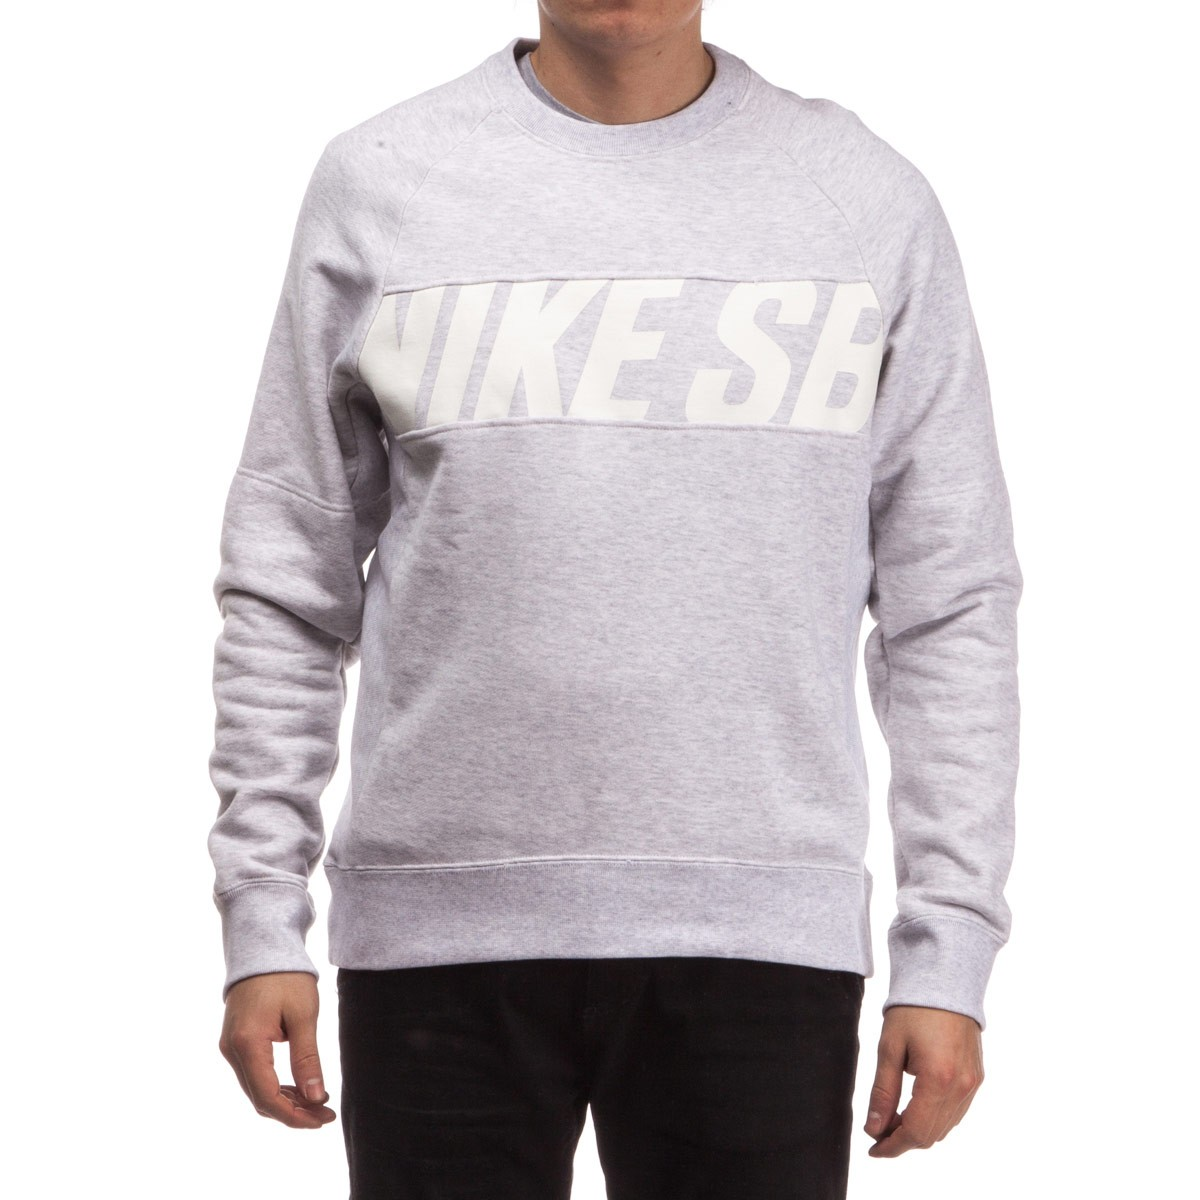 Nike Heatherwhite Crew Motion Sb Birch Sweatshirt Everett c0qCrcg